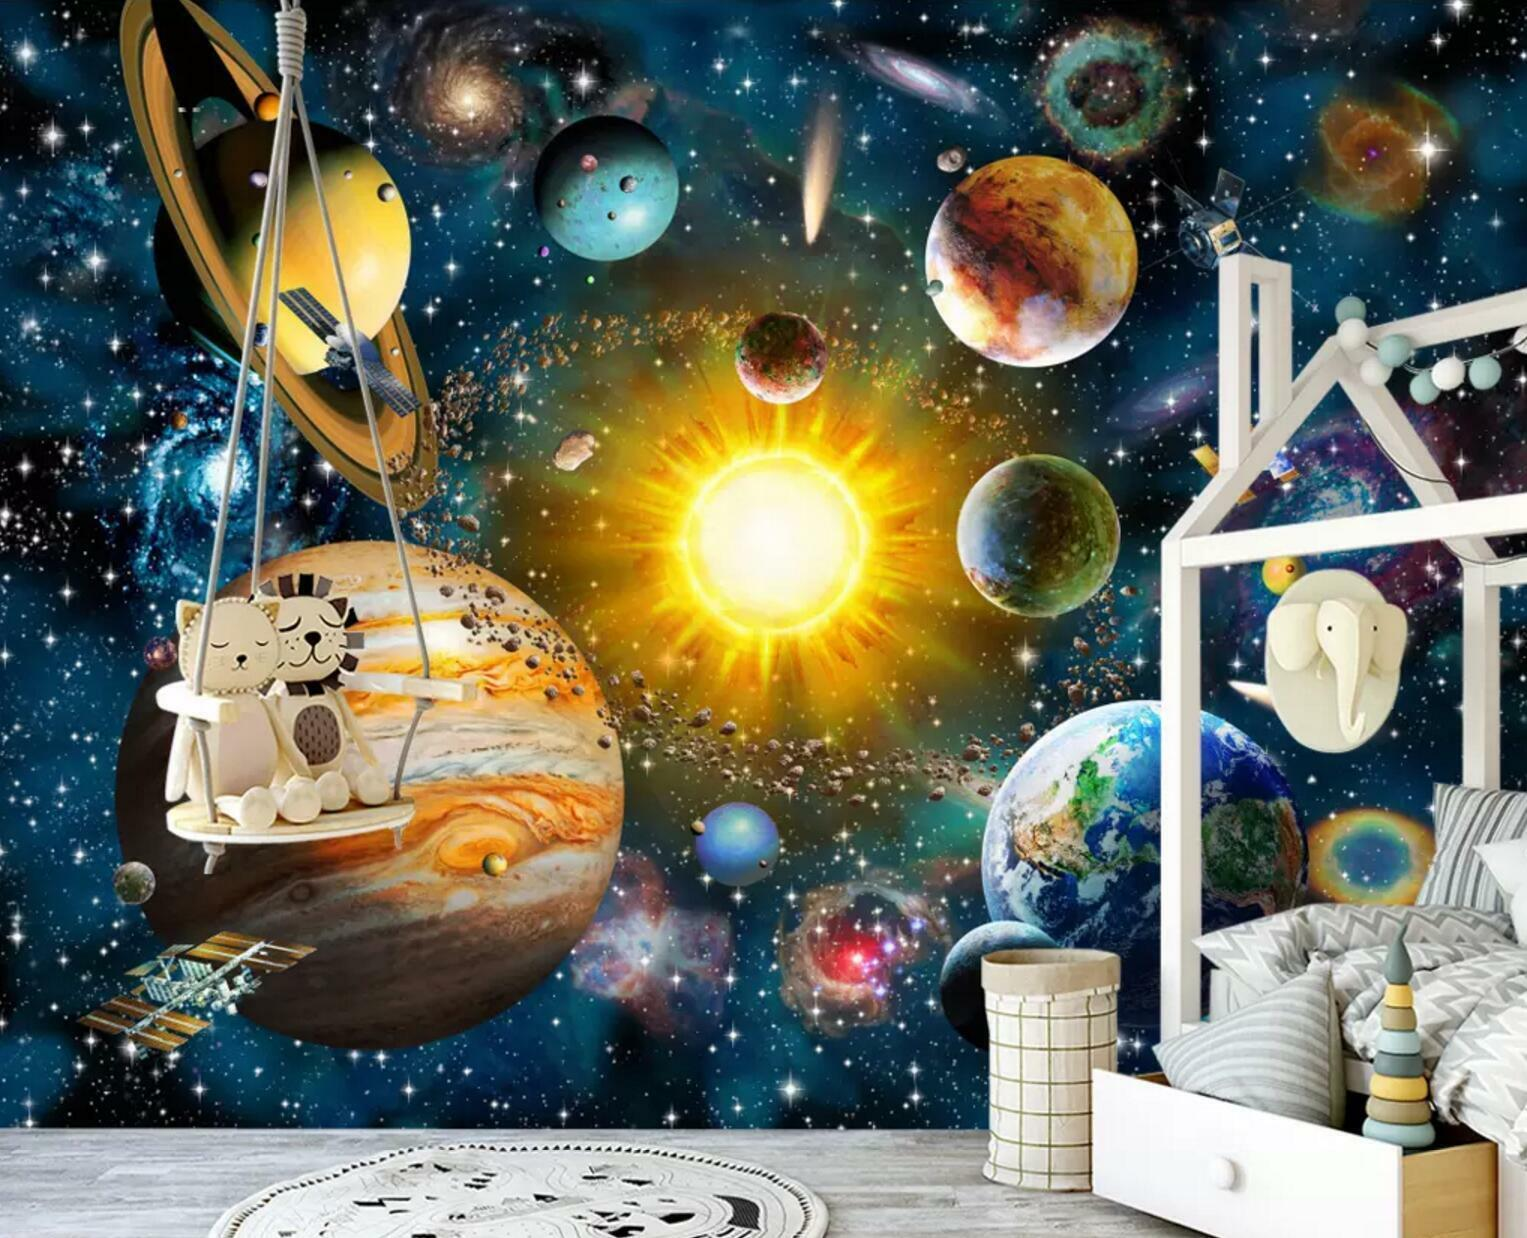 3D Sun Planets Space 45 Wall Paper Exclusive MXY Wallpaper Mural Decal Indoor AJ